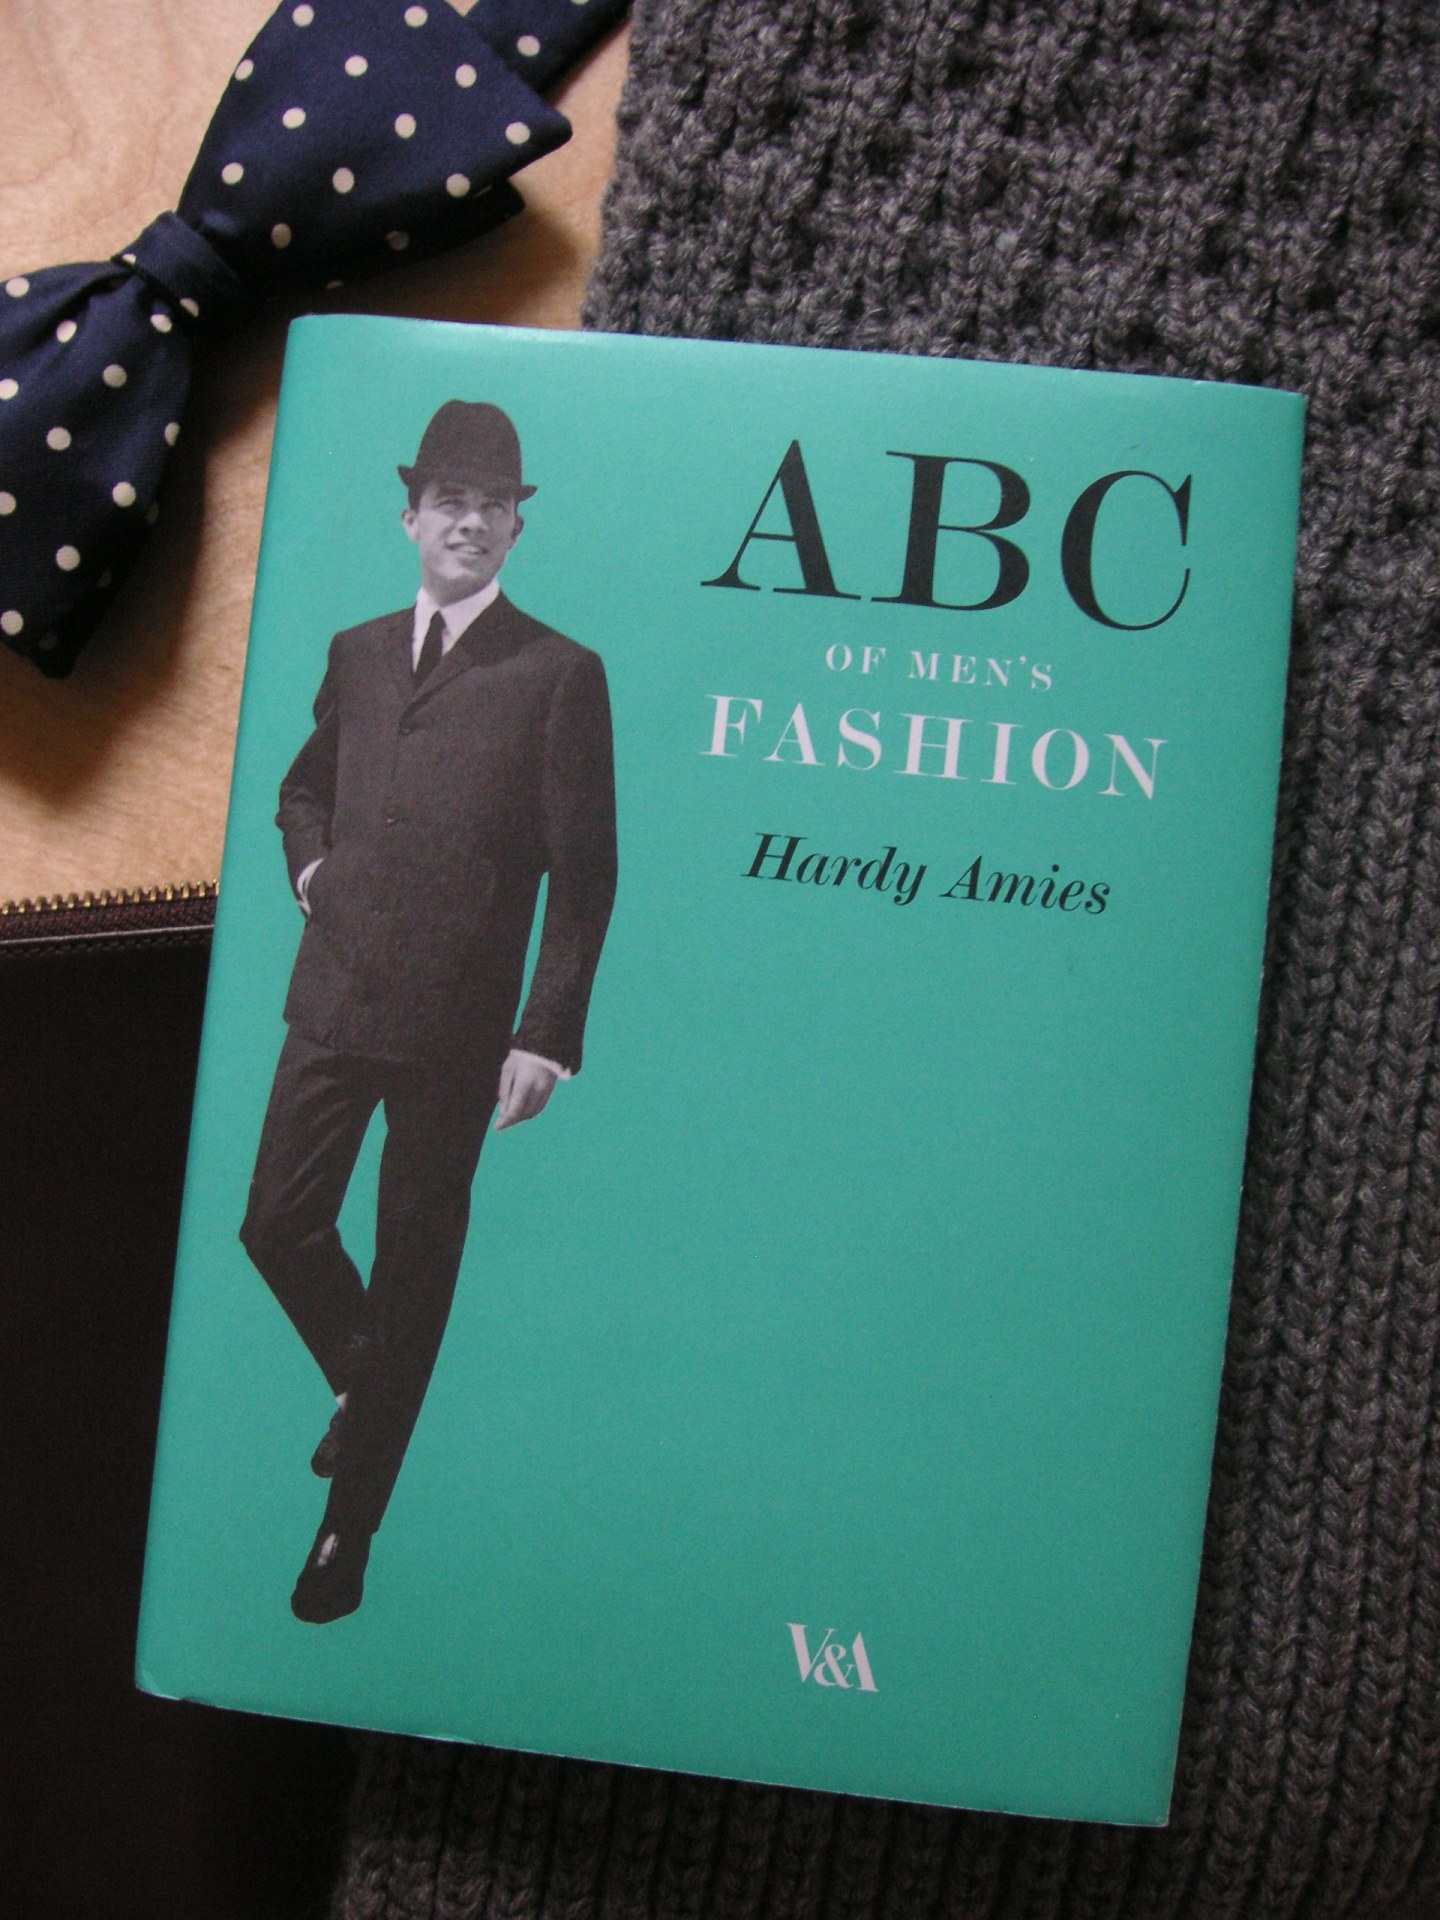 ABC of Men's Fashion by Hardy Amies